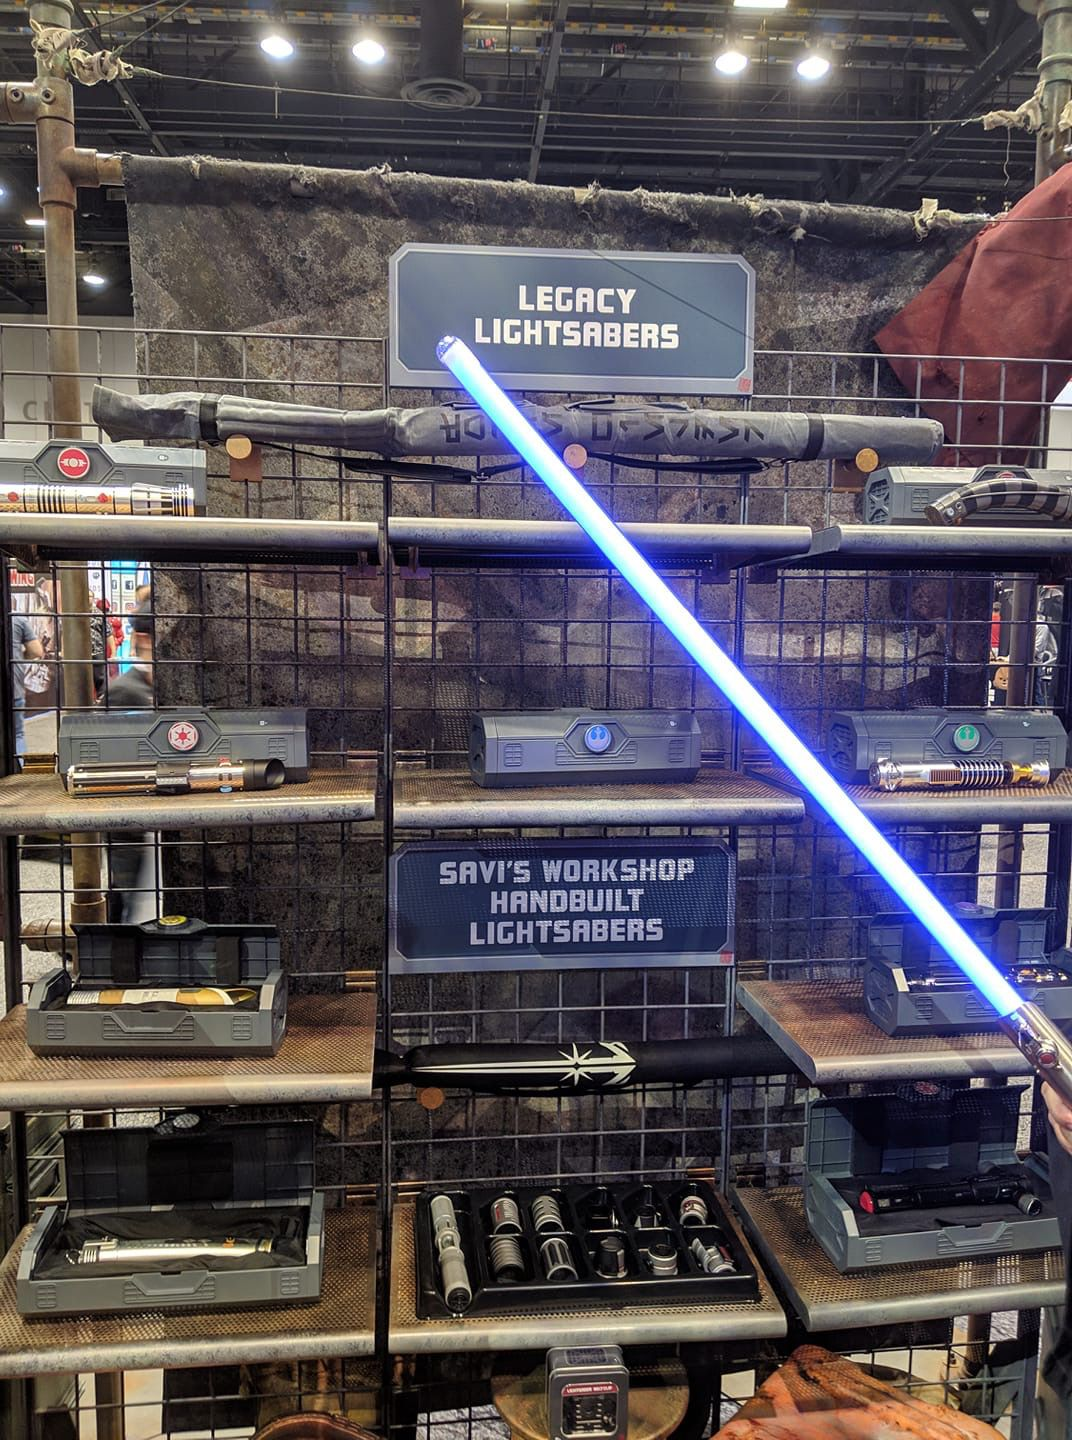 Galaxysedge Lightsaber Star Wars Images Star Wars Disney Star